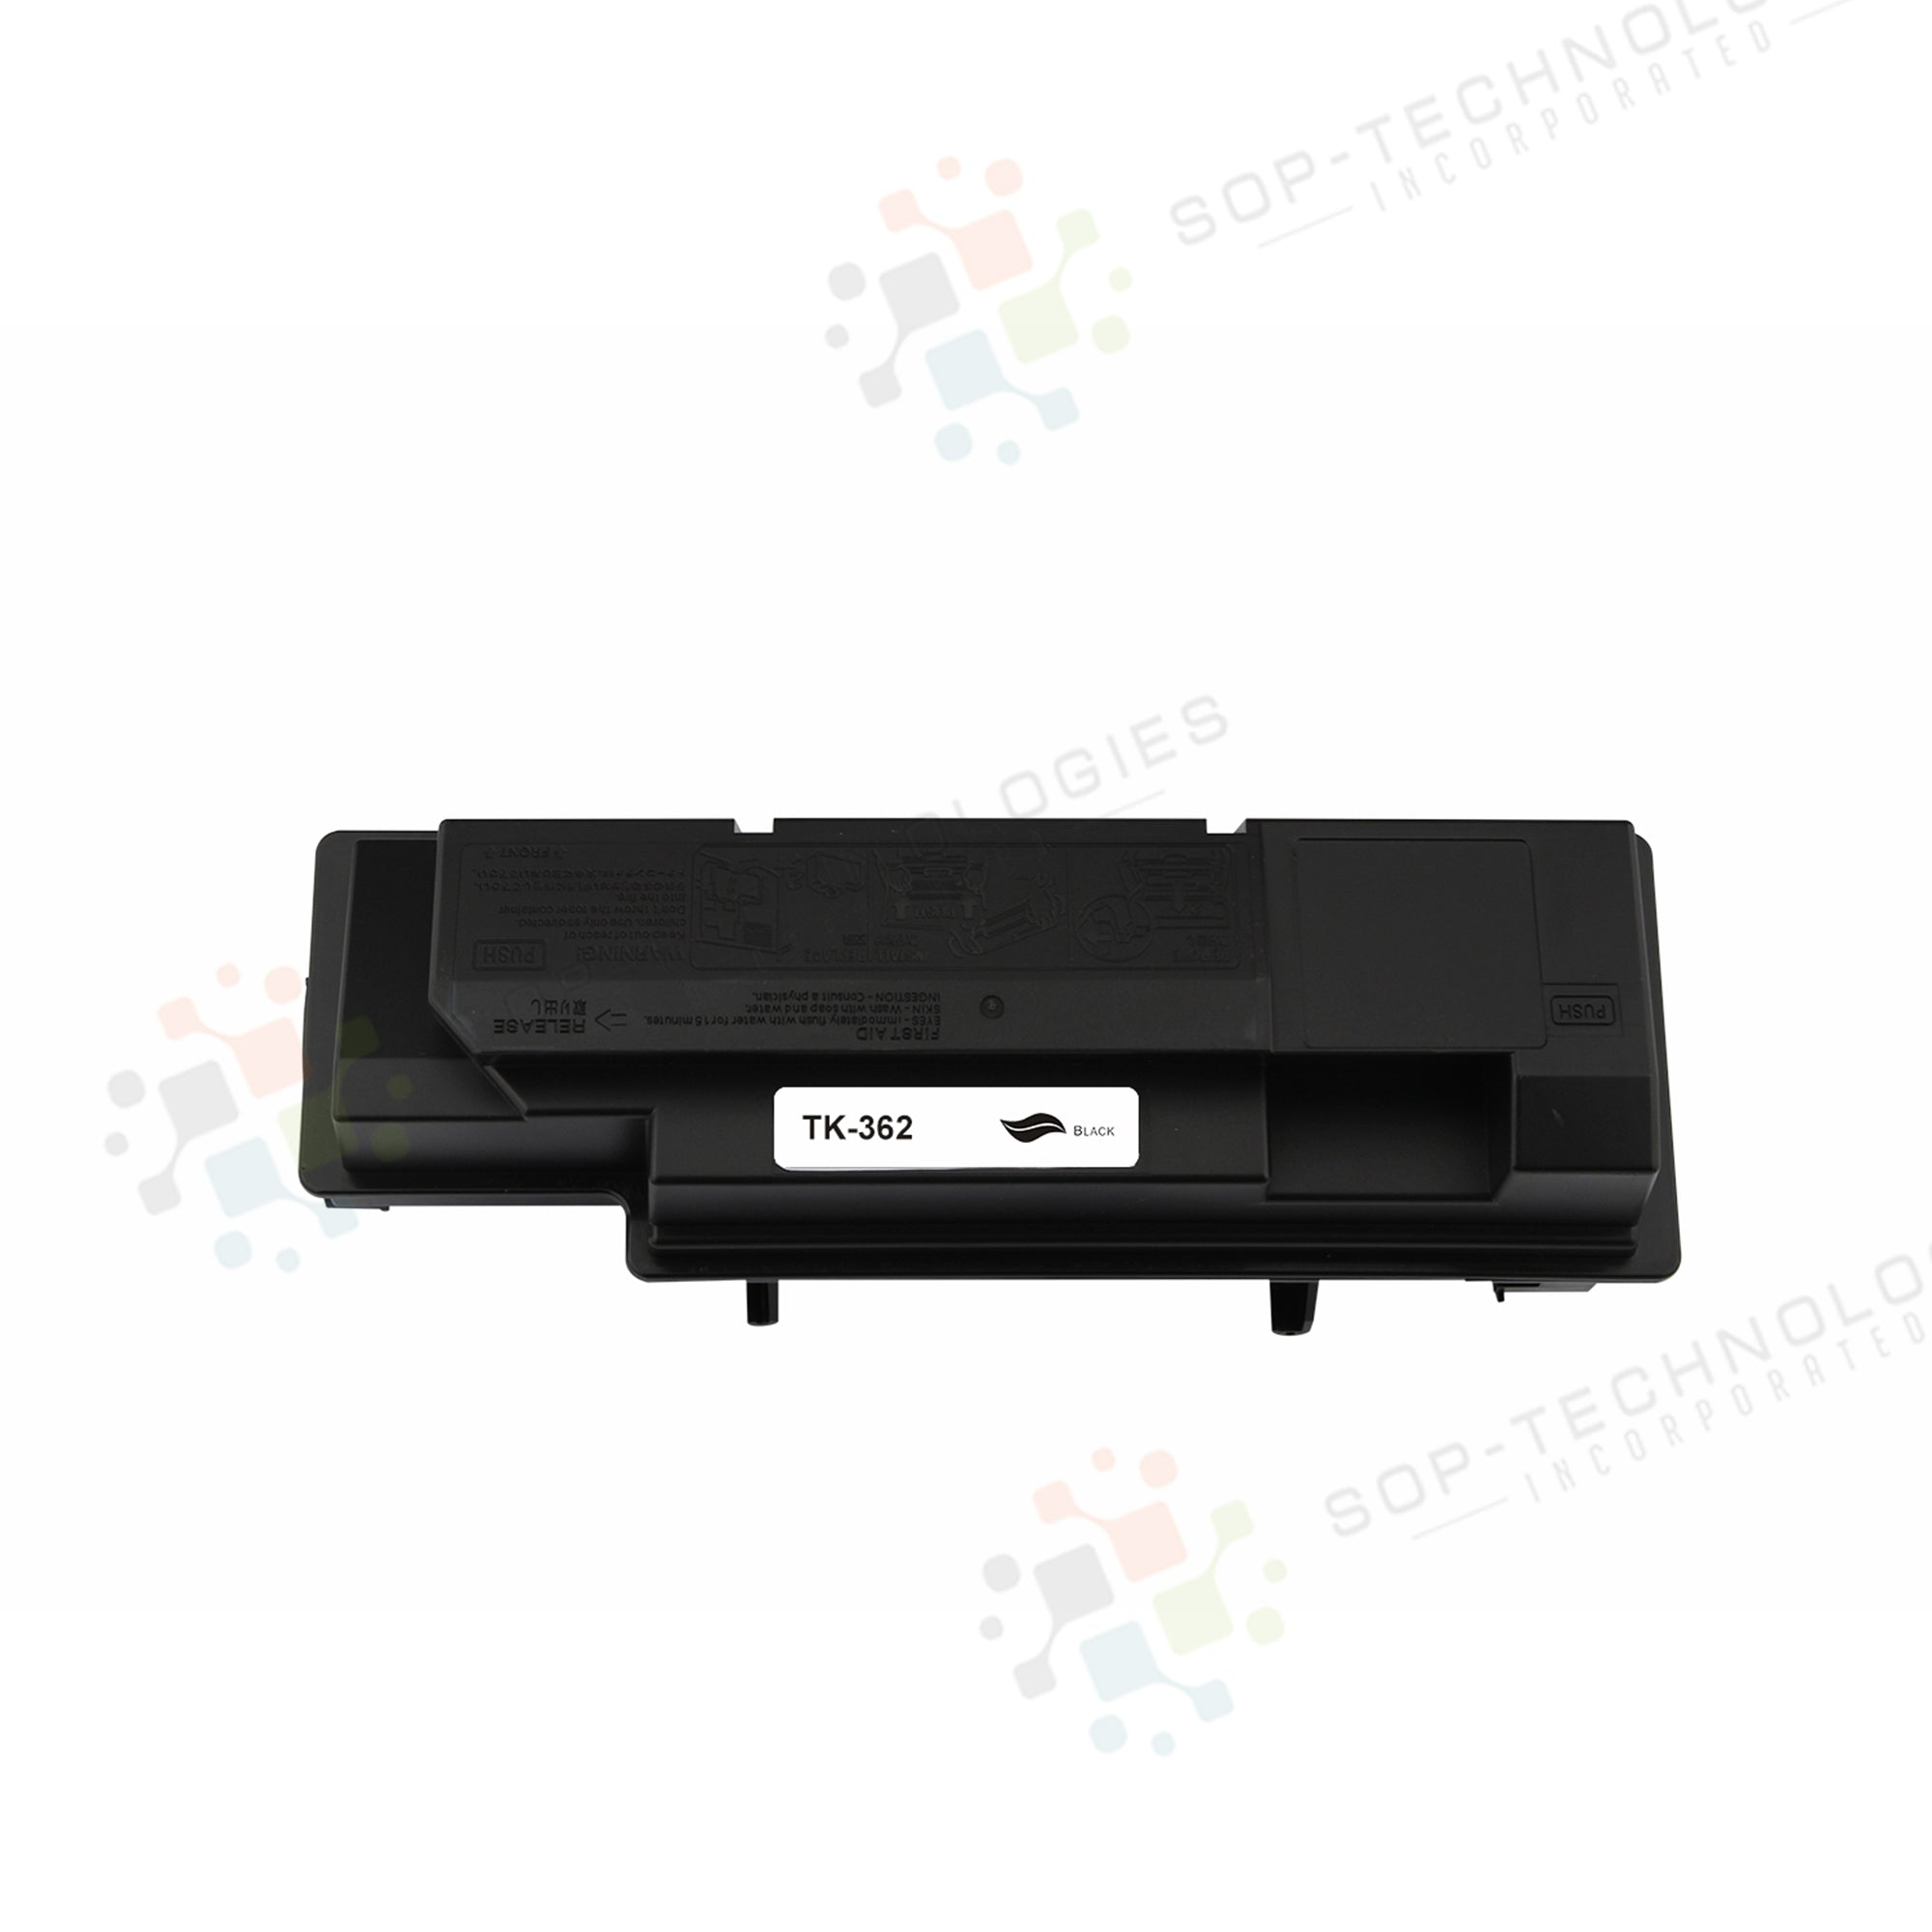 1 Pack Compatible Toner Cartridge Replacement for Kyocera FS-4020D - SOP-TECHNOLOGIES, INC.